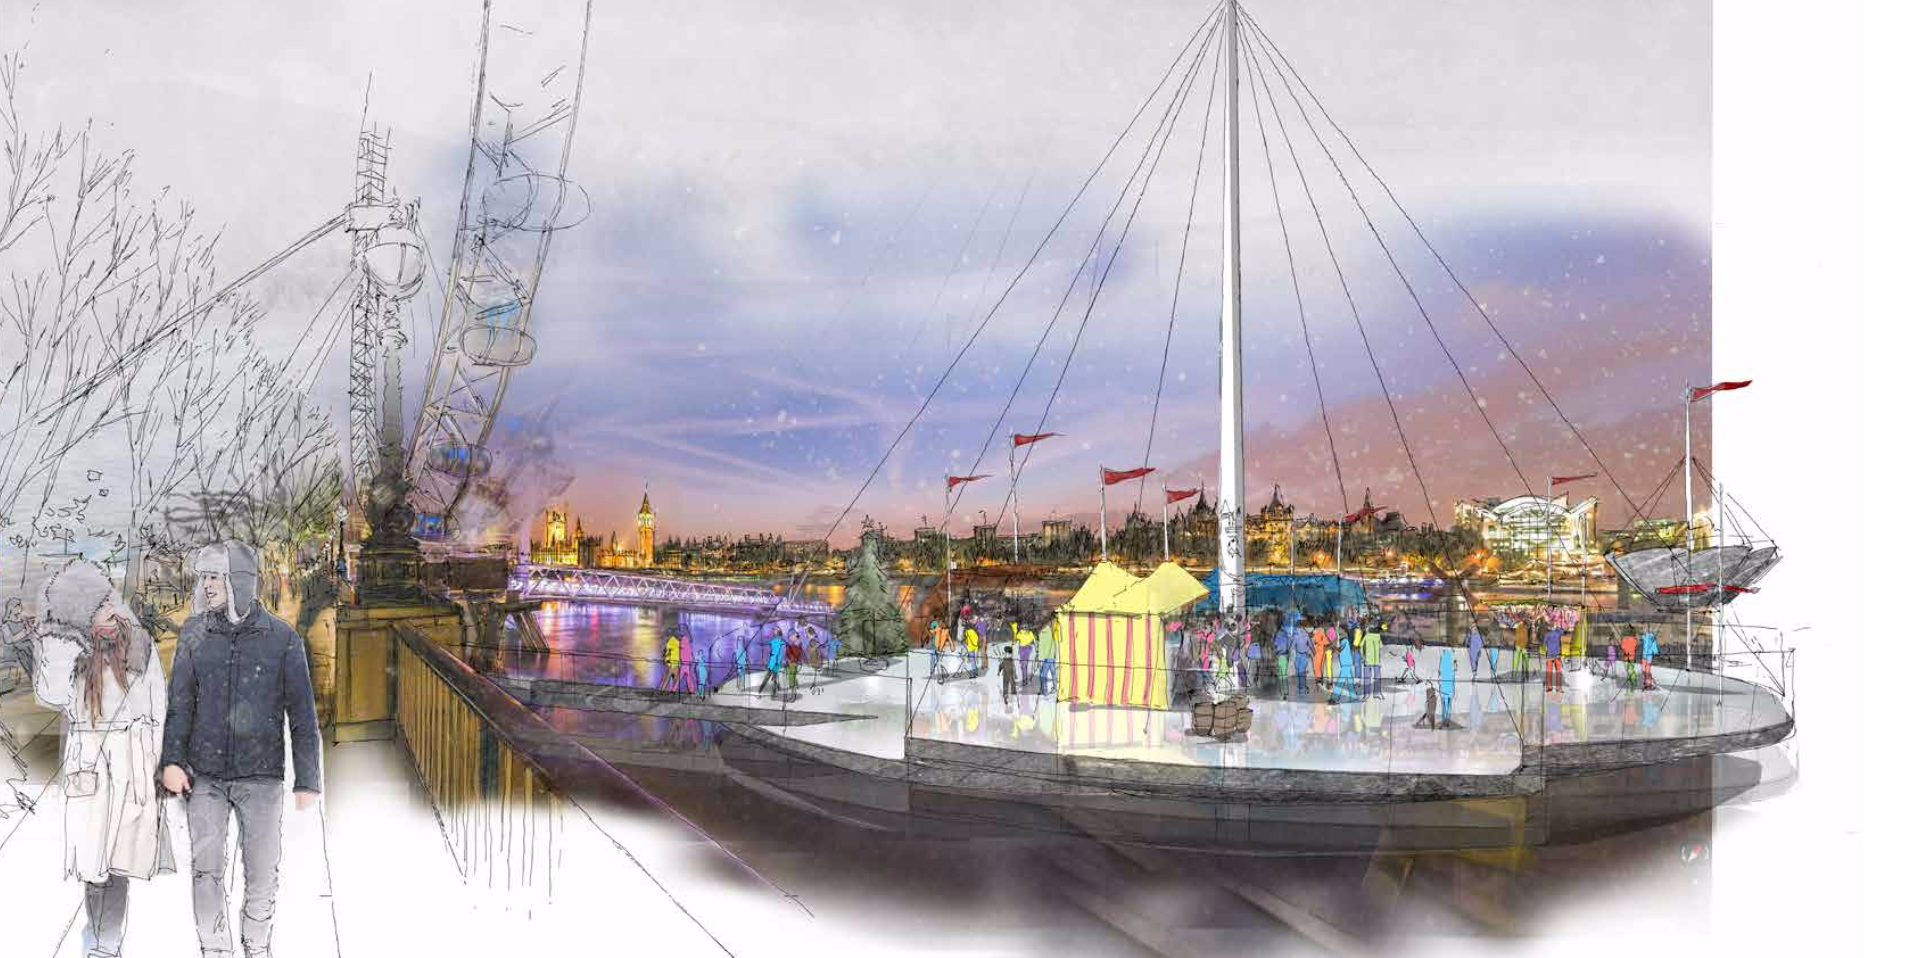 Natural Ice Rinks Would Turn London's Thames Into a Winter Wonderland